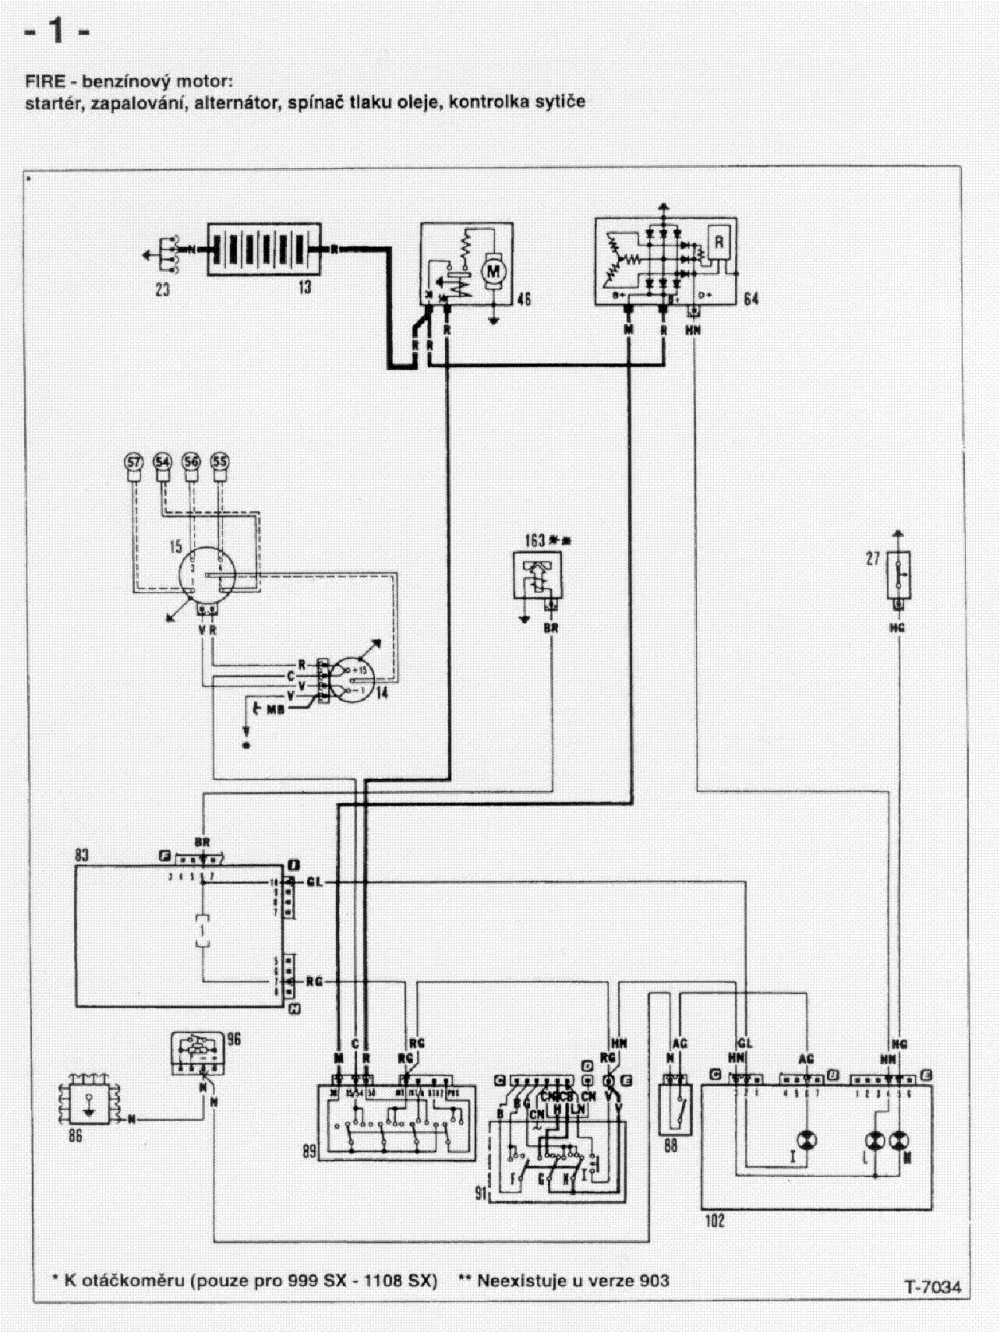 medium resolution of fiat uno wiring diagram service manual download schematics eeprom fiat wiring schematics